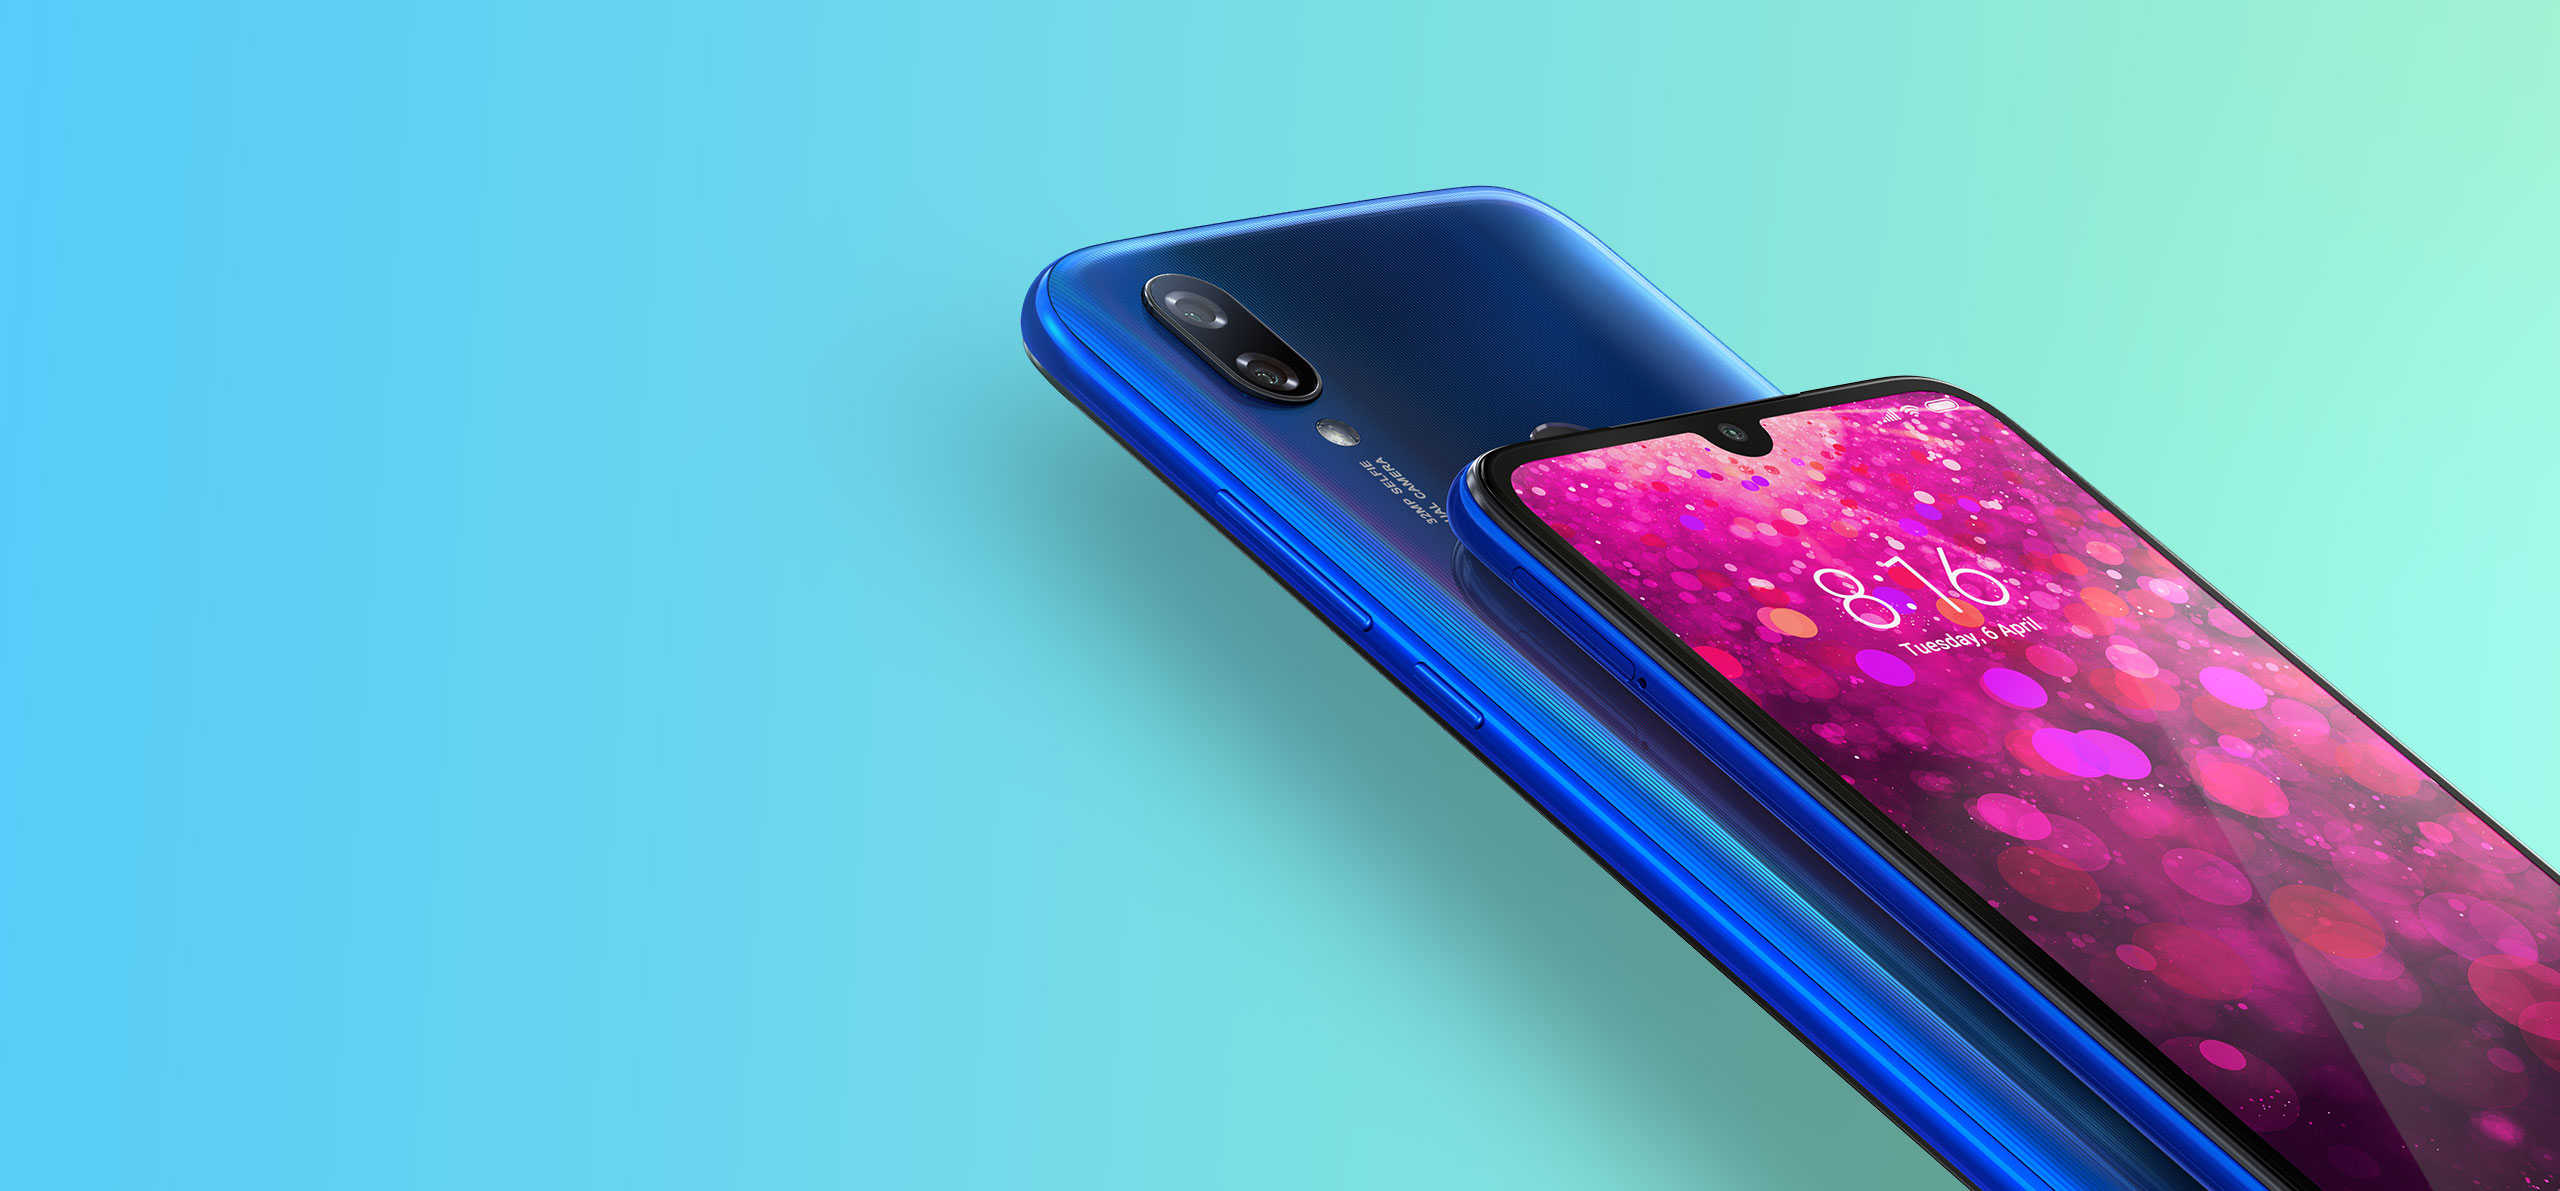 "Display Type Waterdrop display Price Ksh 14,500 - 3GB/32GB ROM variant Ksh 17,500 - 4GB/64GB ROM variant Size 6.26"" Resolution 720*1520 Protection Gorilla Glass 5 + p2i hydrophobic coating Platform Operating System MIUI 10 based on Android Pie Chipset Qualcomm's Snapdragon 632 CPU Octa-core (4x Cortex-A73, 4x Cortex-A53) GPU Adreno 506 Memory RAM 3/4GB Internal 32/64GB External microSD, up to 512GB Network Technology Dual 4G Dual VoLTE SIM Dual nano-SIM Camera Main Dual: Main: 12MP, f/2.2, 1.25 micron pixels Secondary: 2MP depth sensor, phase detection autofocus, LED flash Front 32MP Battery Size 4000mAh Type Li-Ion Colors Prime Black, Bold Red, Elegant Blue Features Rear Fingerprint reader, IR blaster."